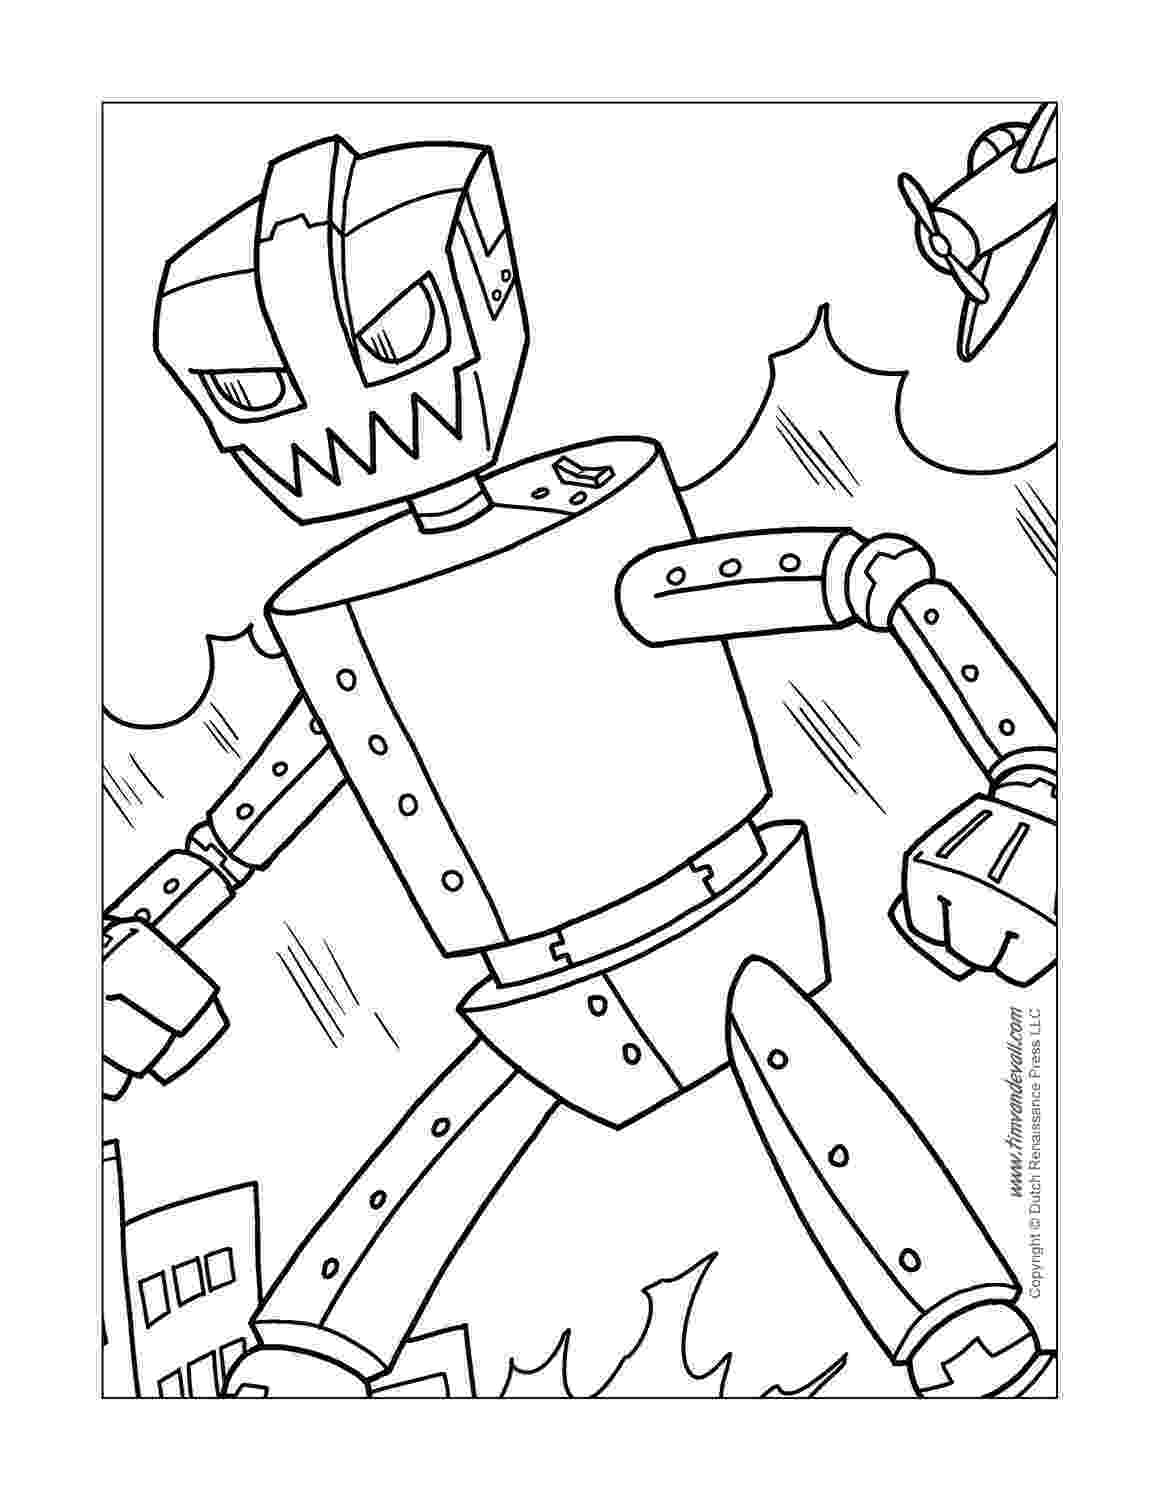 colouring pages for real steel real steel robots coloring pages sketch coloring page pages steel for colouring real